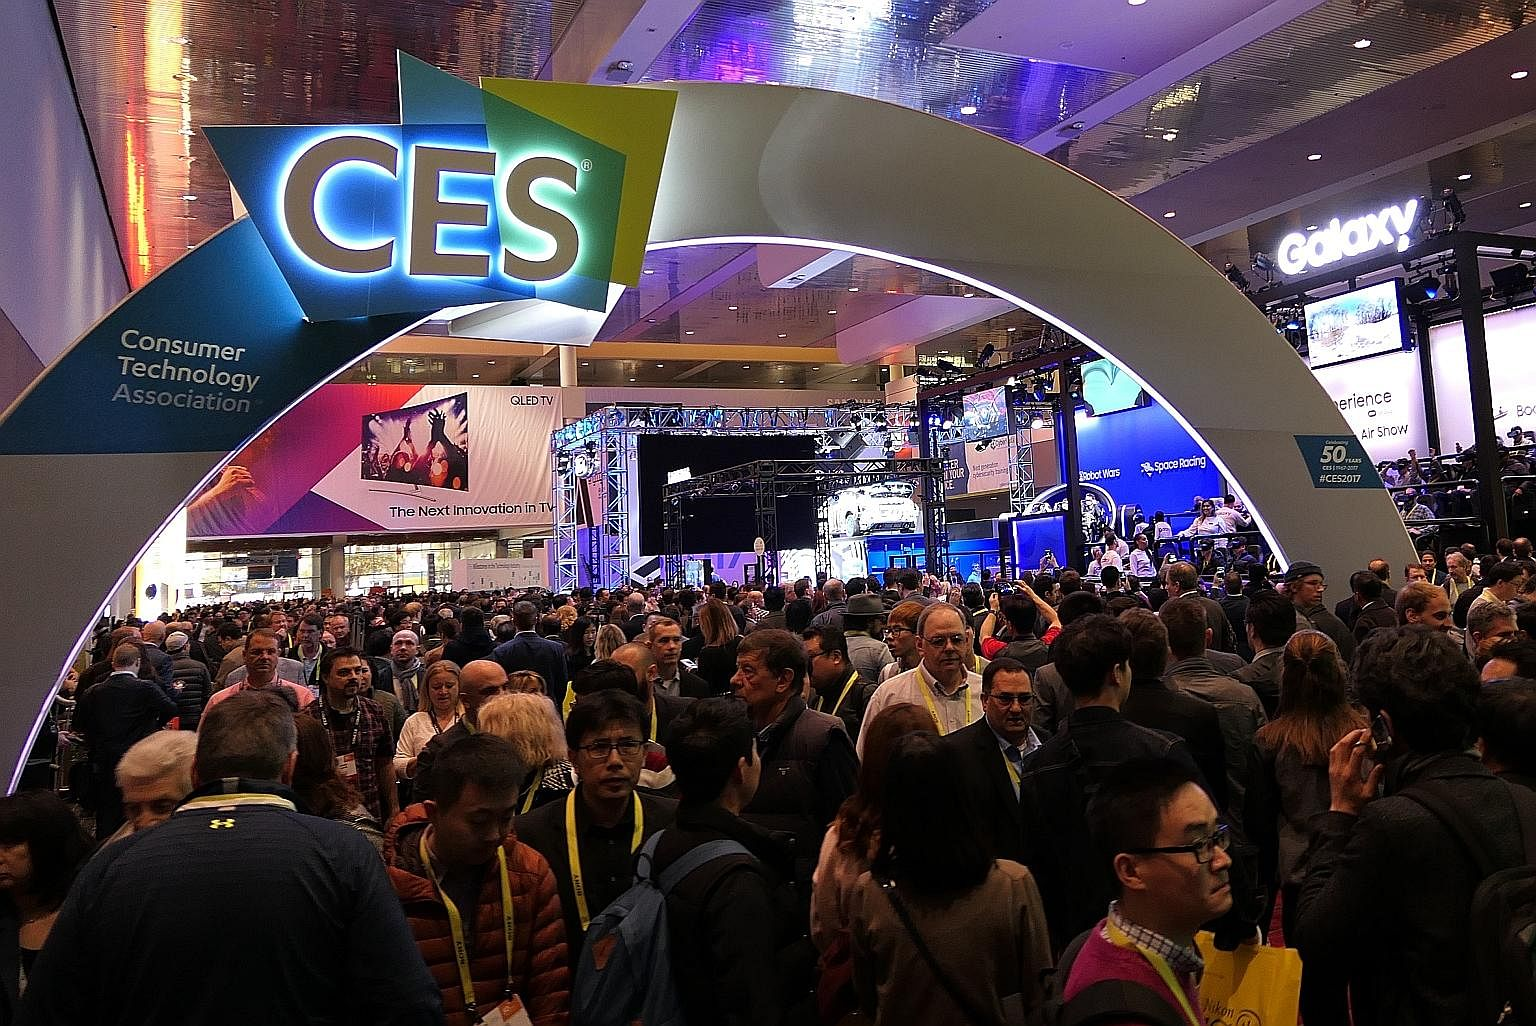 A sea of attendees thronging the exhibition halls of the CES 2017 consumer electronics trade show in Las Vegas last week.